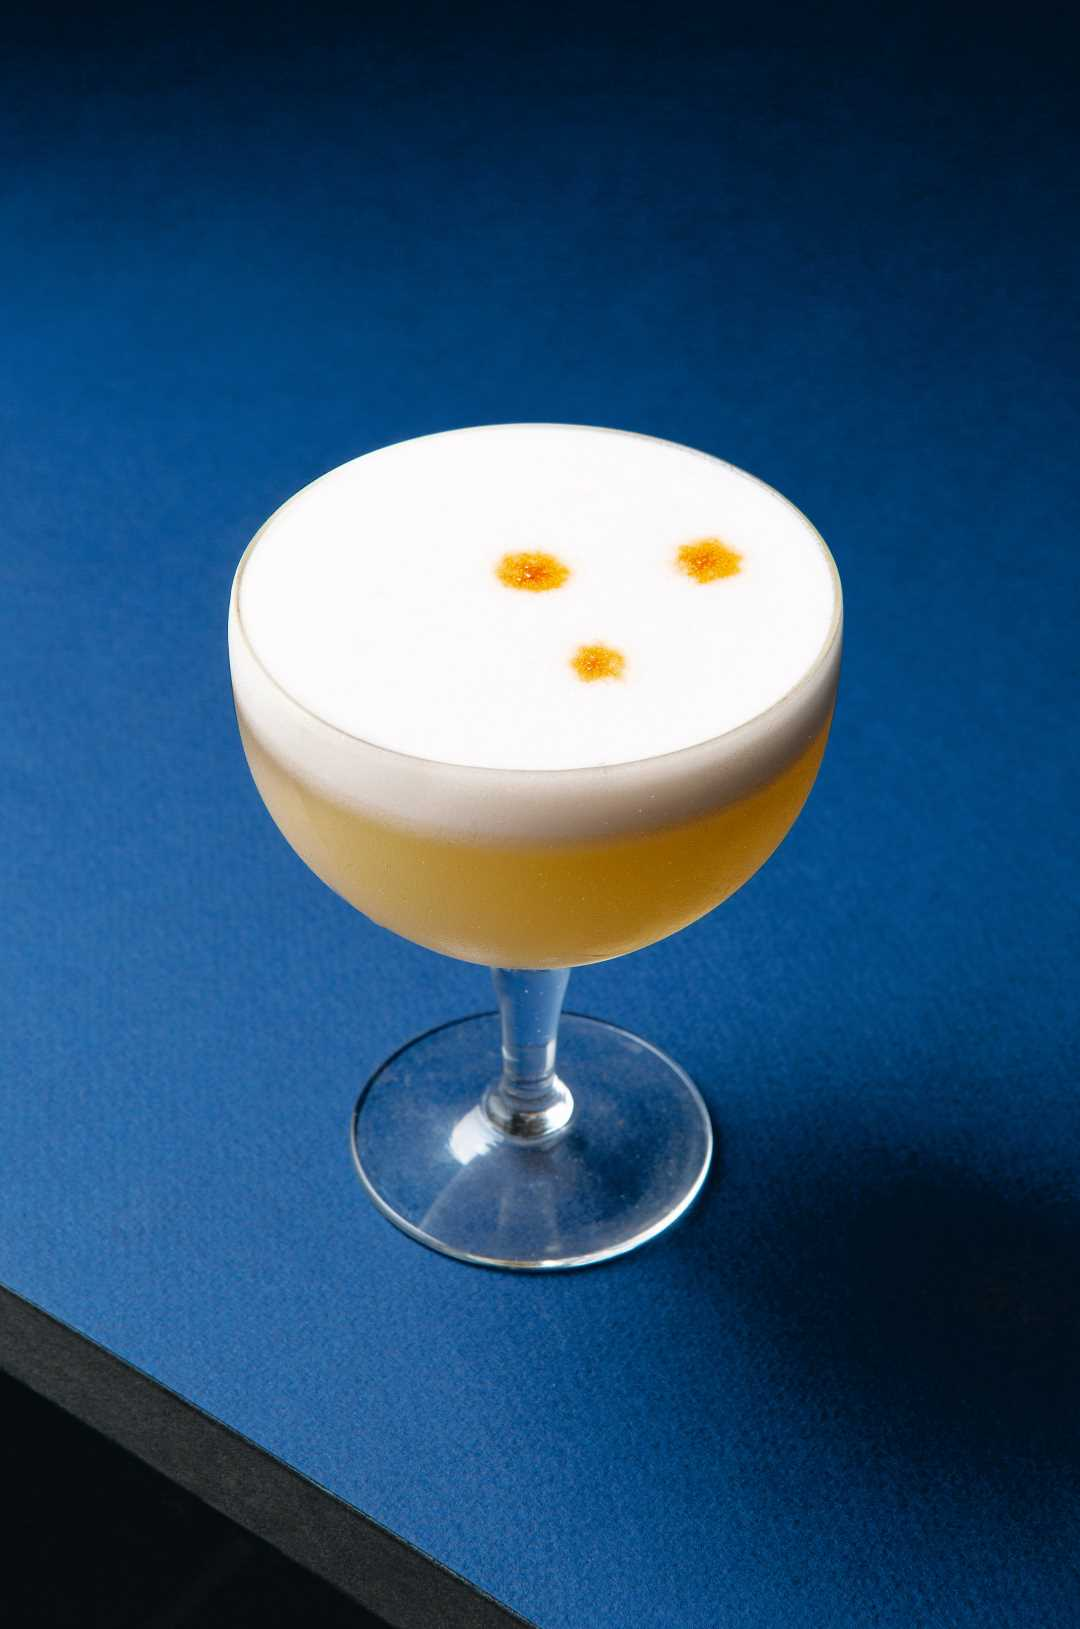 Home bar tenders can froth your egg white for a Pisco Sour using an immersion blender, says the author of Spirited. All photographs by Andy Sewell